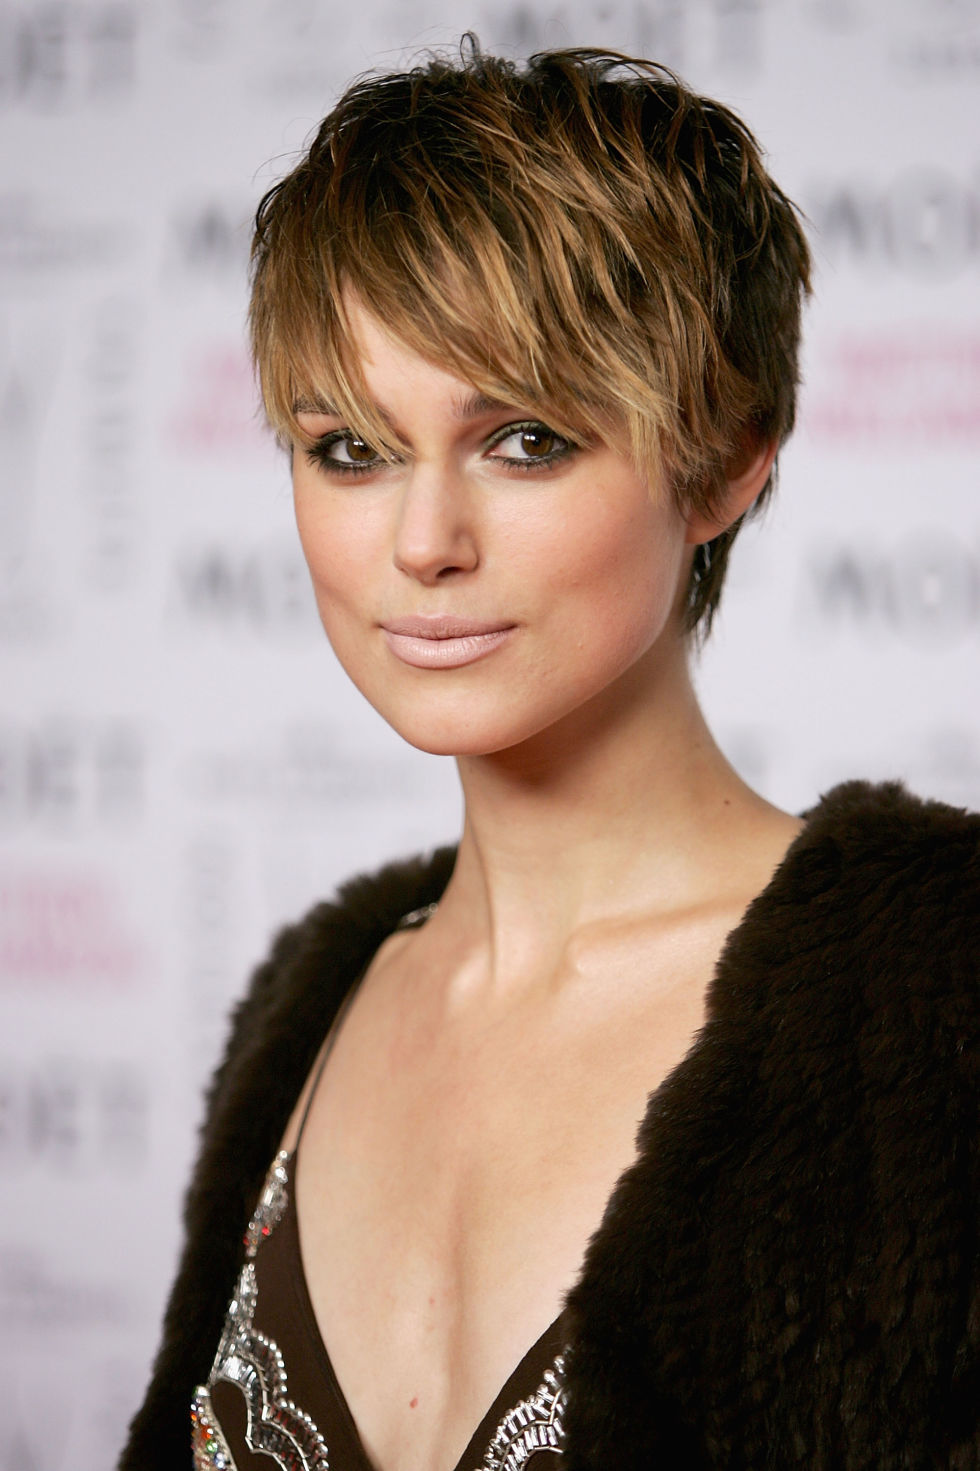 Short Razor Cut Hairstyles 45 Best Pixie Cut Hairstyle Ideas For 2017 Chic Celebrity Pixie